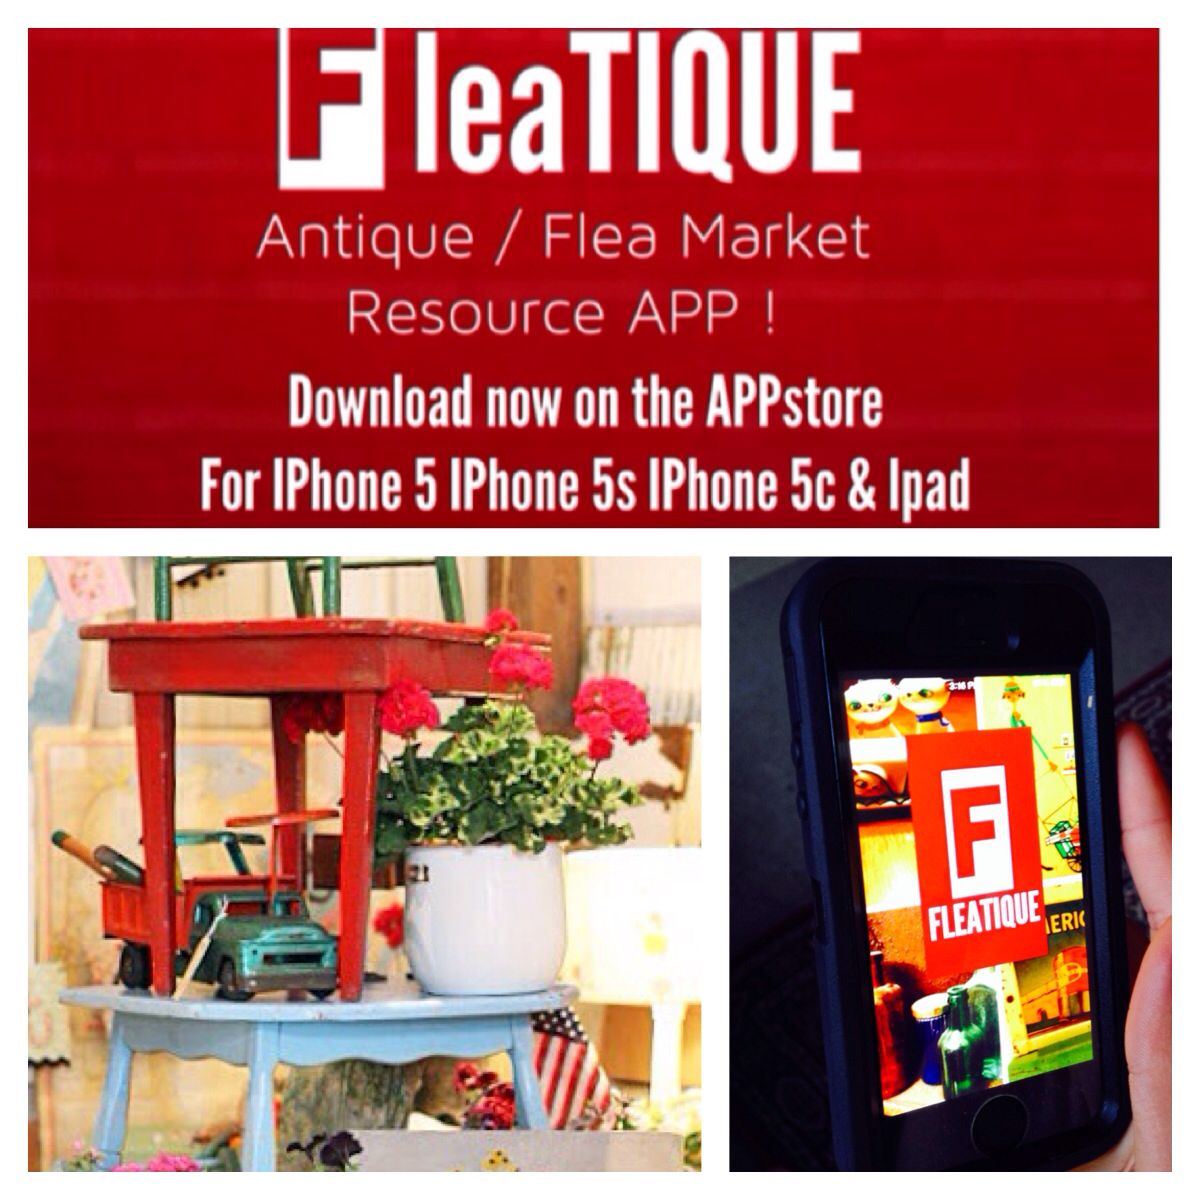 Hgtv Home Design Software Free Download: Pin By * MANDY JOHNSON * On Vintage/antiques